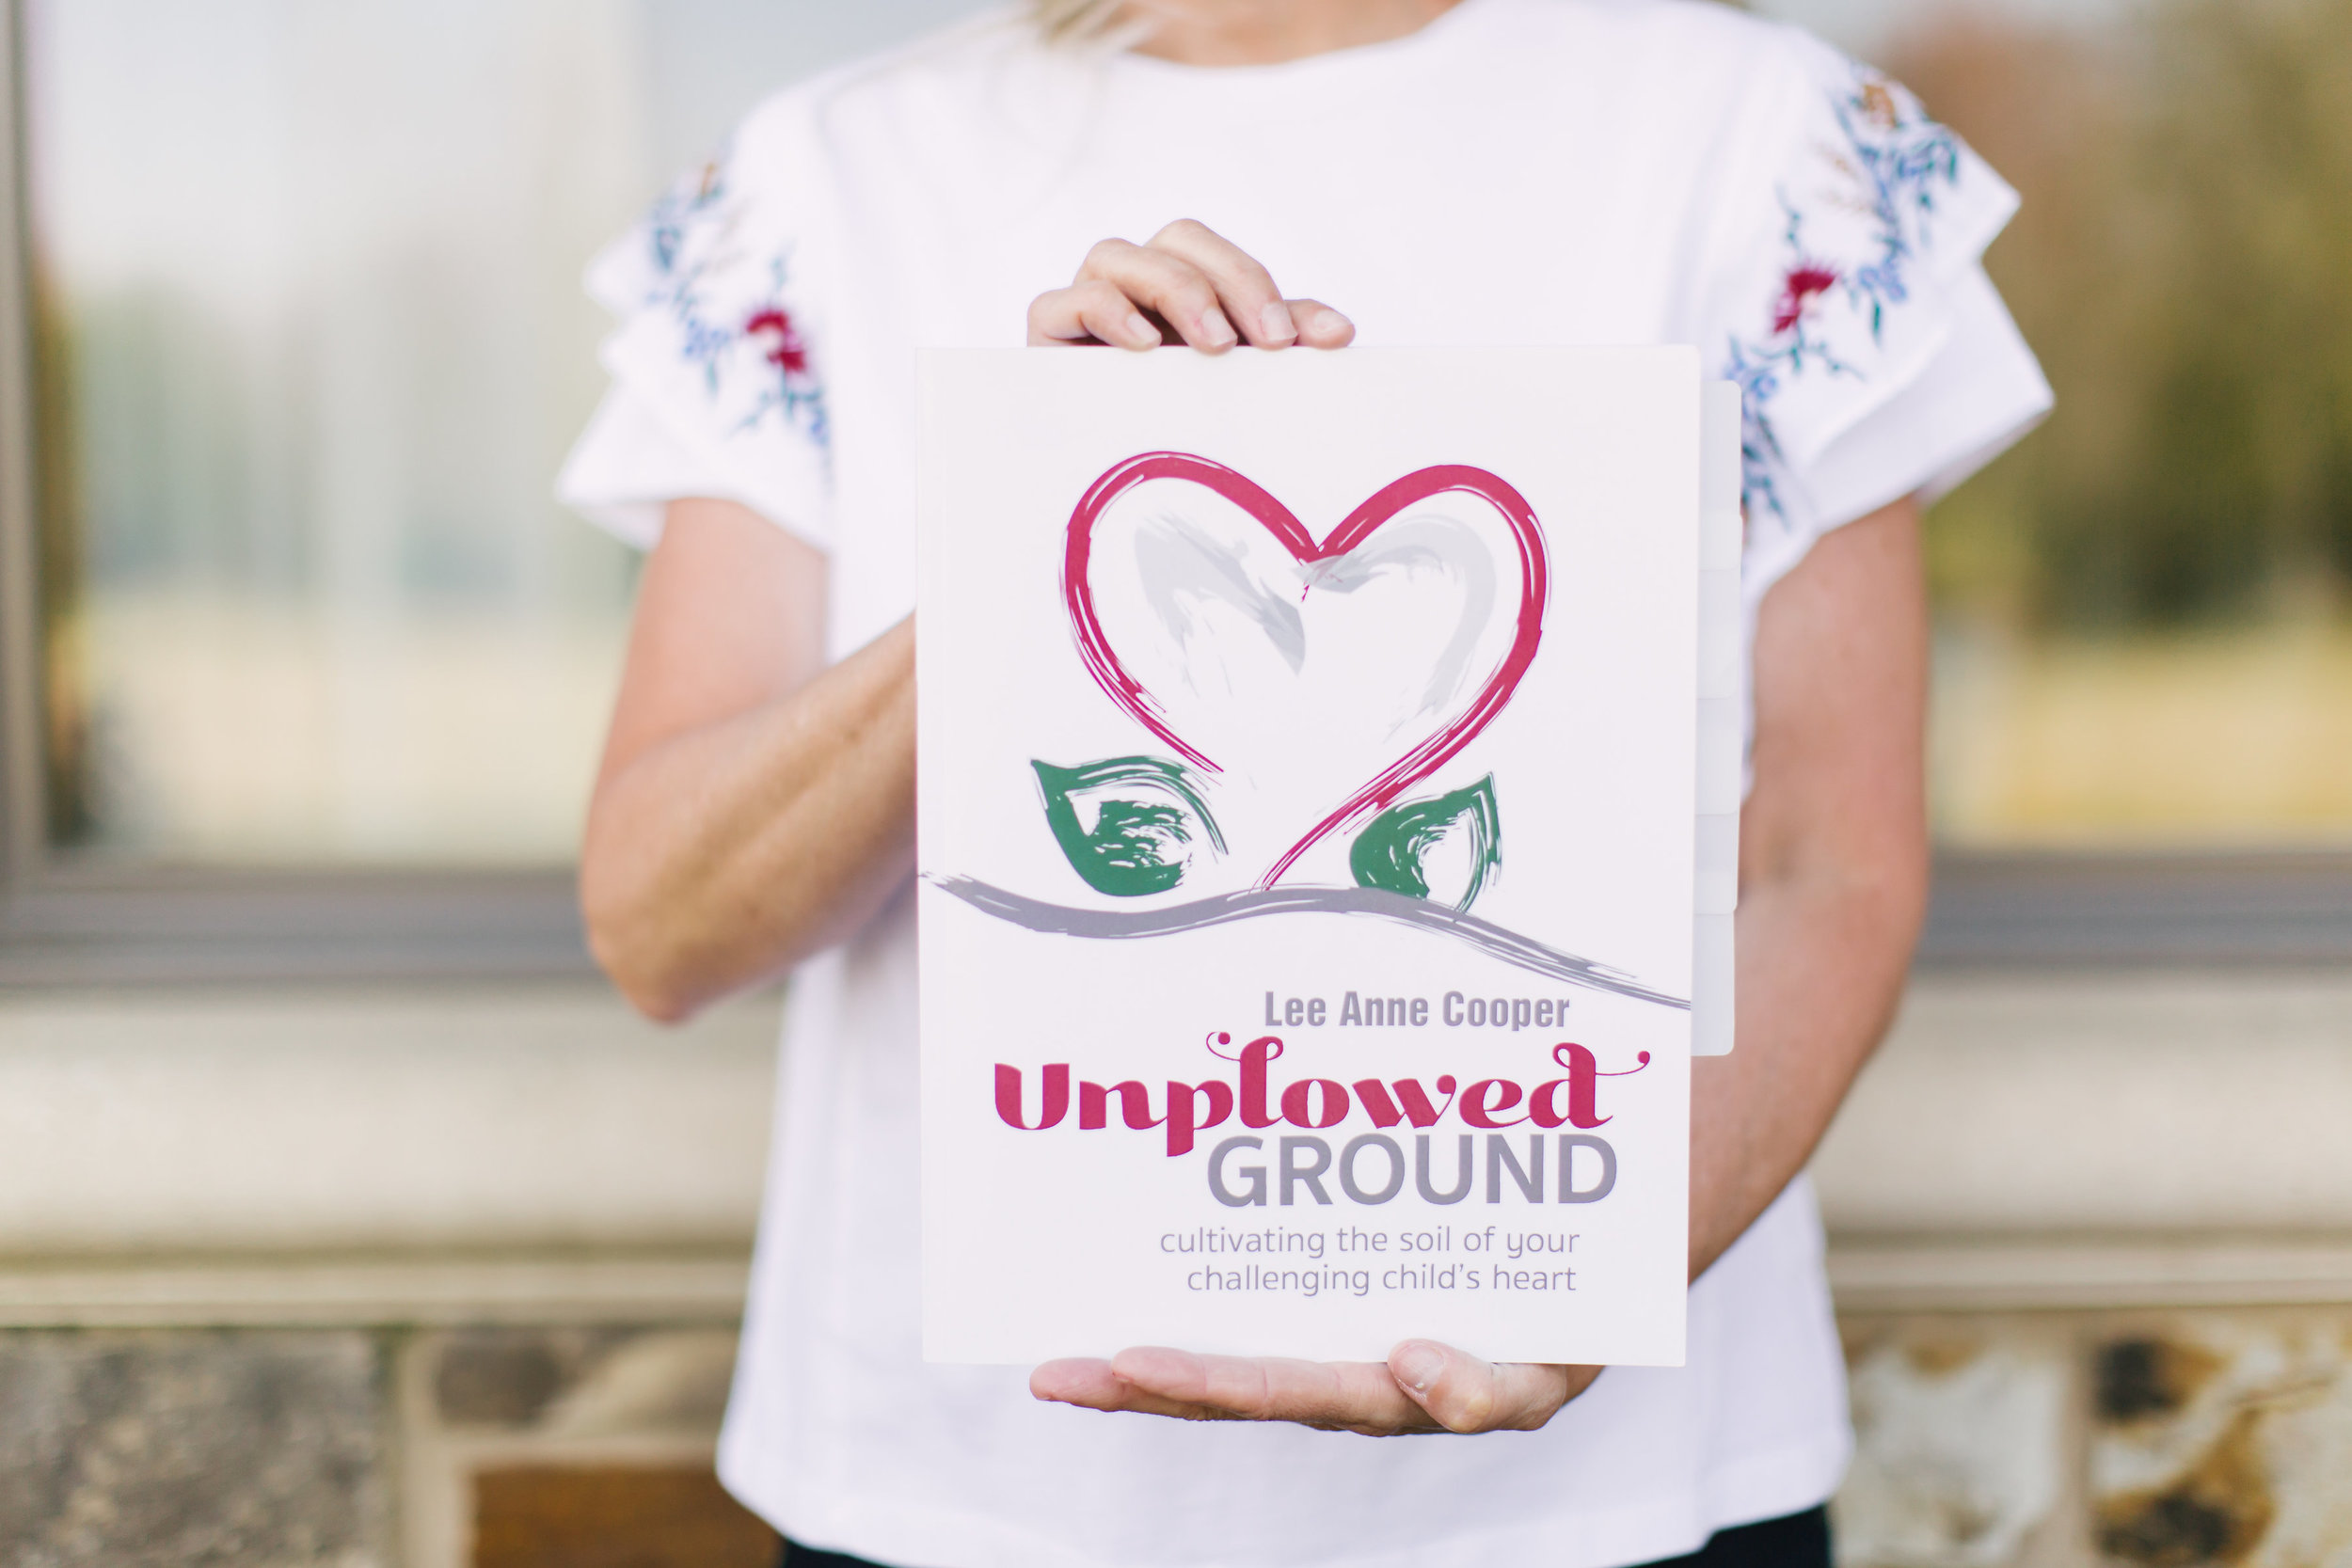 Our therapeutic parenting program Unplowed Ground: Cultivating the Soil of your Rescued Child's Heart.